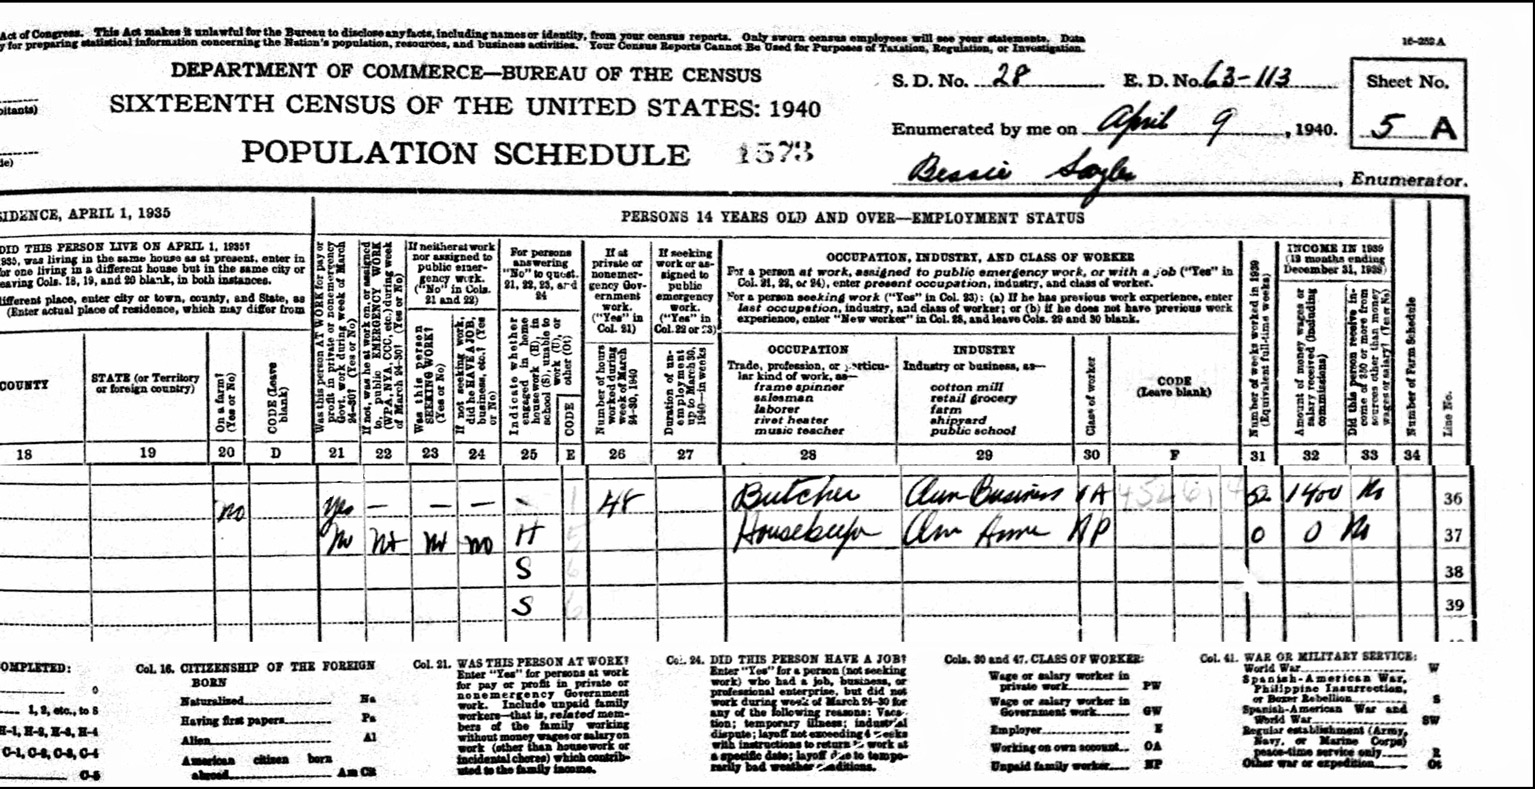 1940 US Federal Census Record for the August Lather Household (Right)